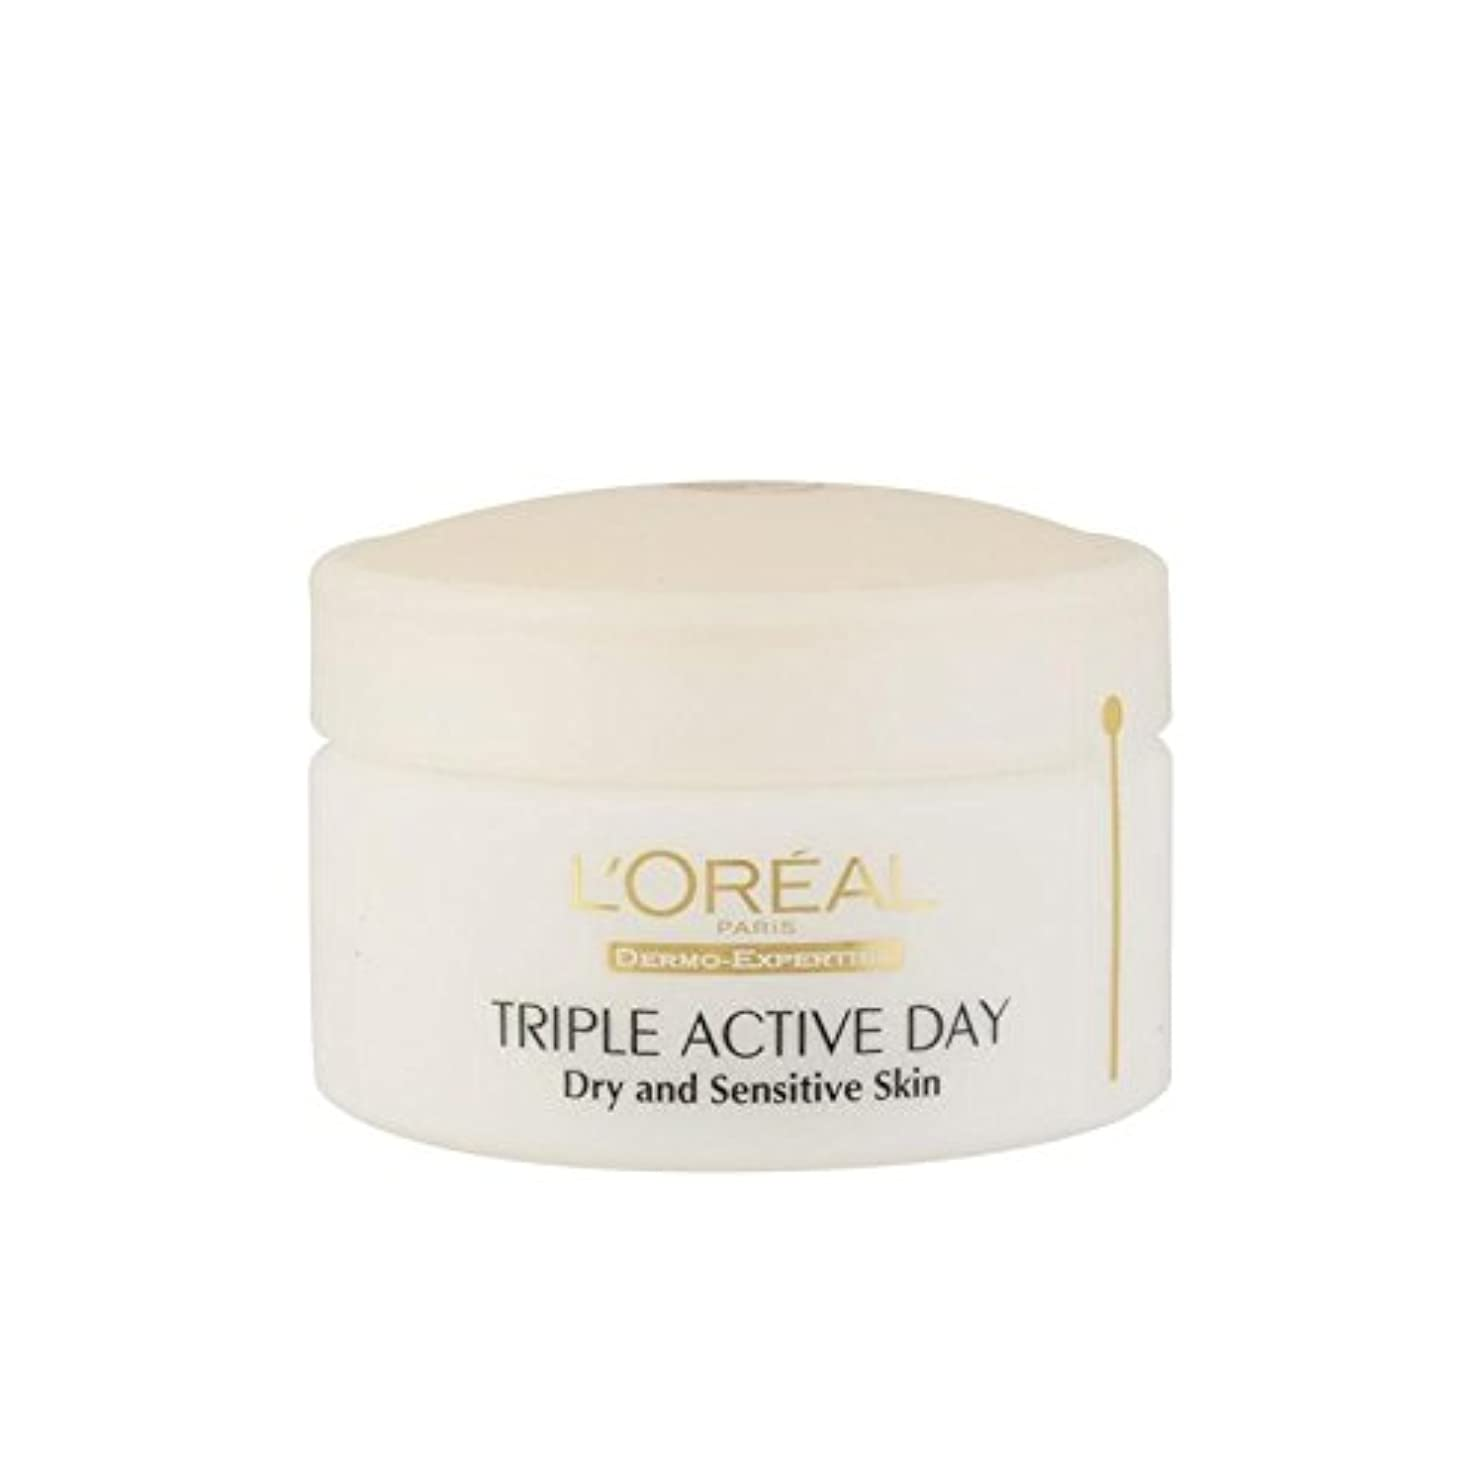 L'Oreal Paris Dermo Expertise Triple Active Day Multi-Protection Moisturiser - Dry/Sensitive Skin (50ml) (Pack...